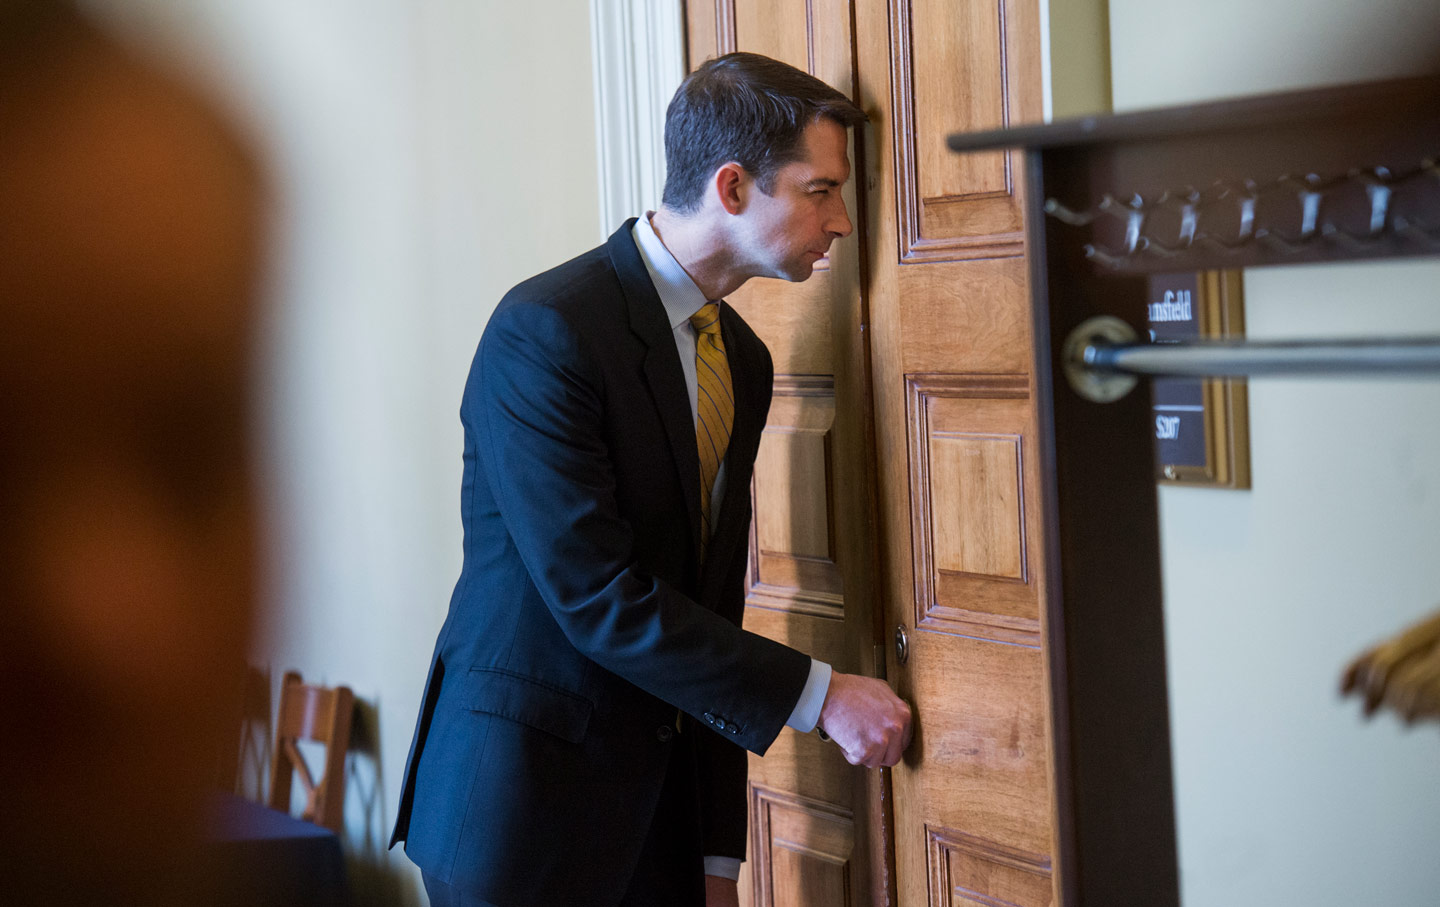 Here's How to Ruin Tom Cotton's Election Night